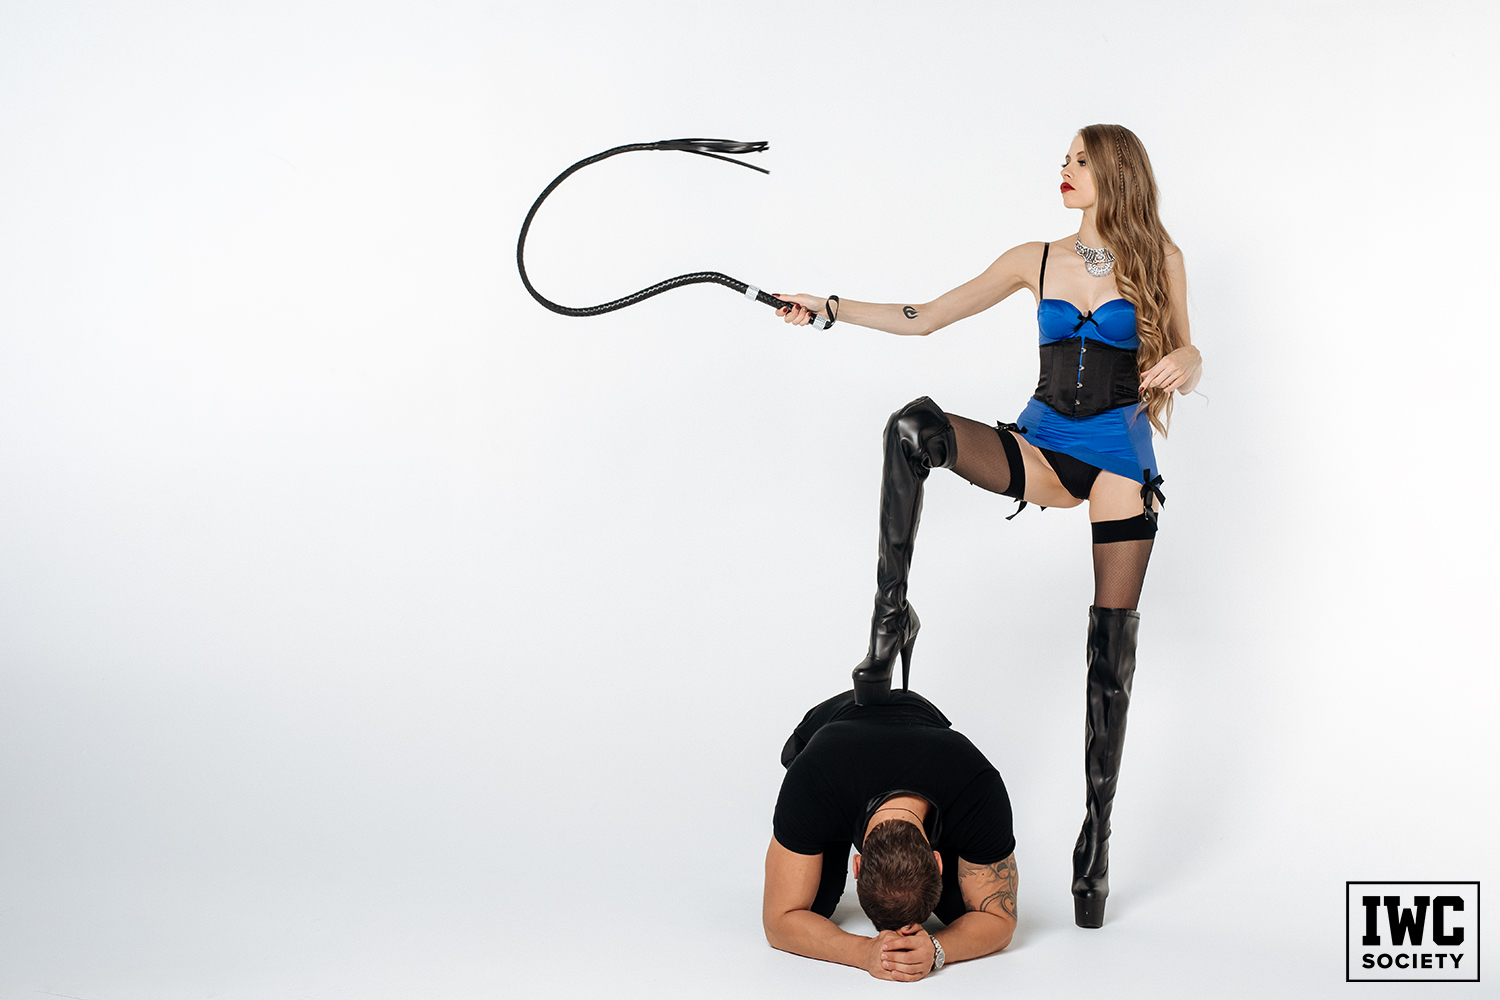 domme with long blonde hair in thigh high boots standing on a slave with a whip